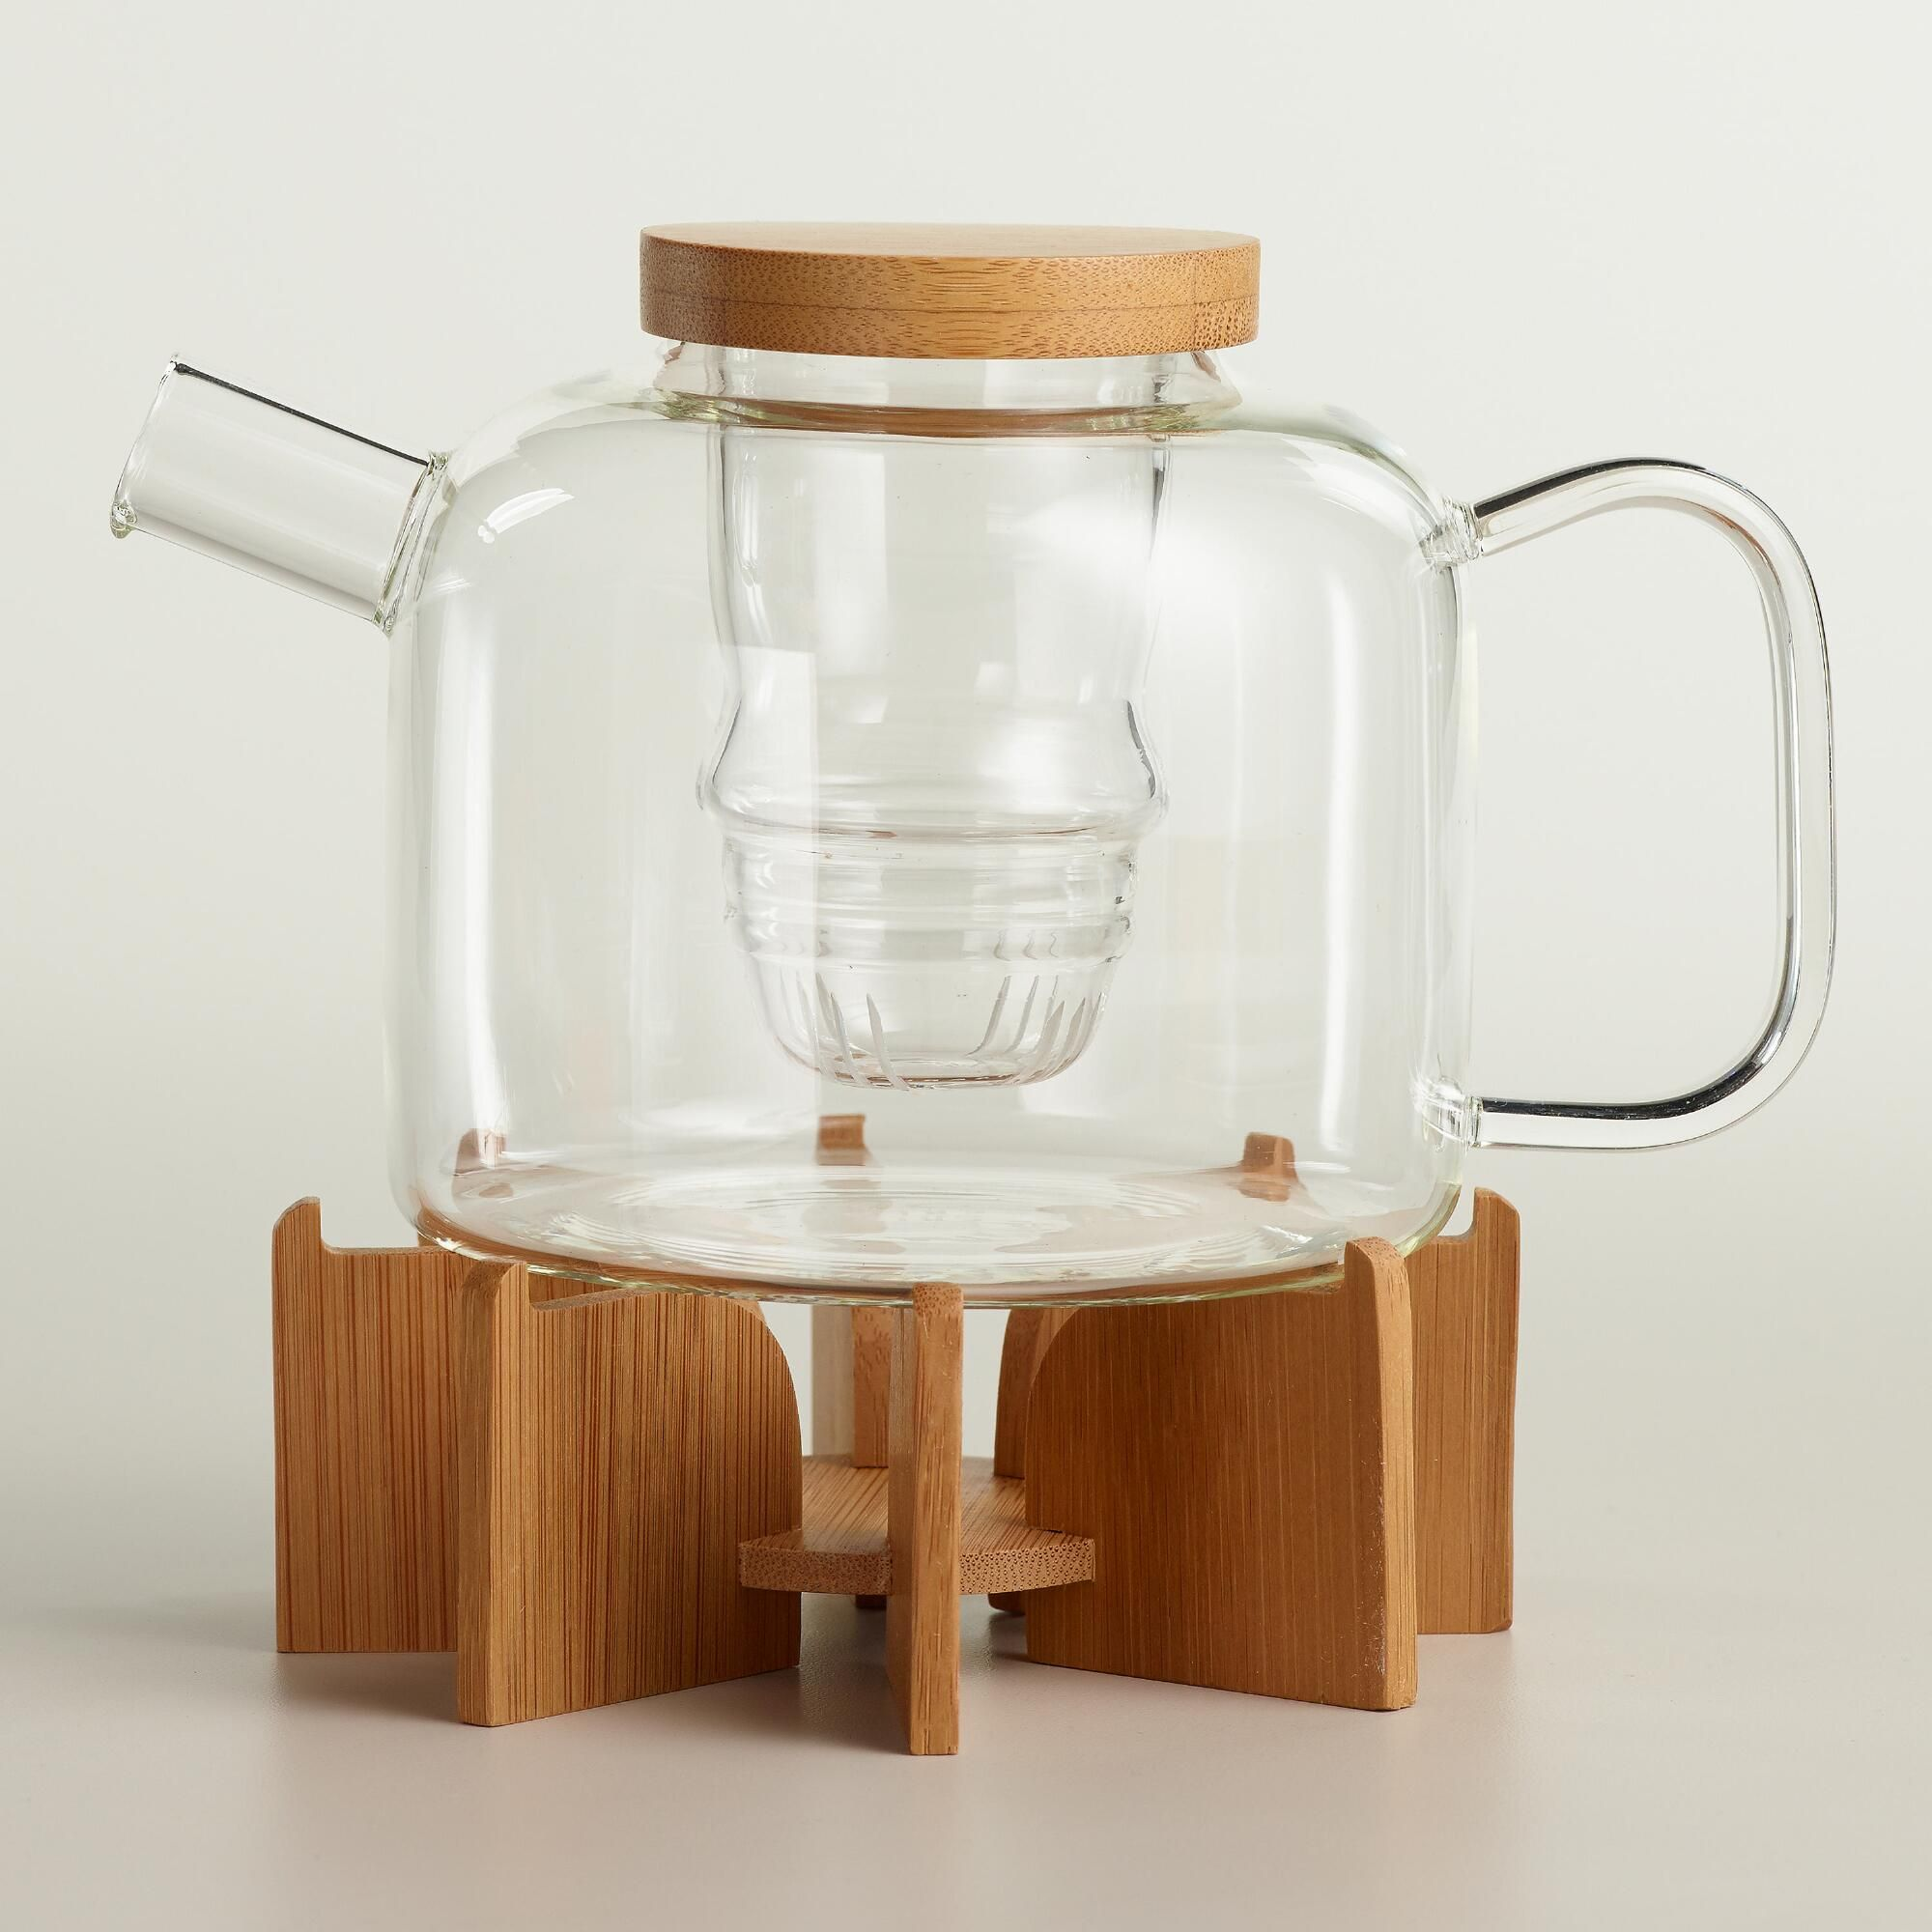 Our chic, modern teapot features a removable glass infuser